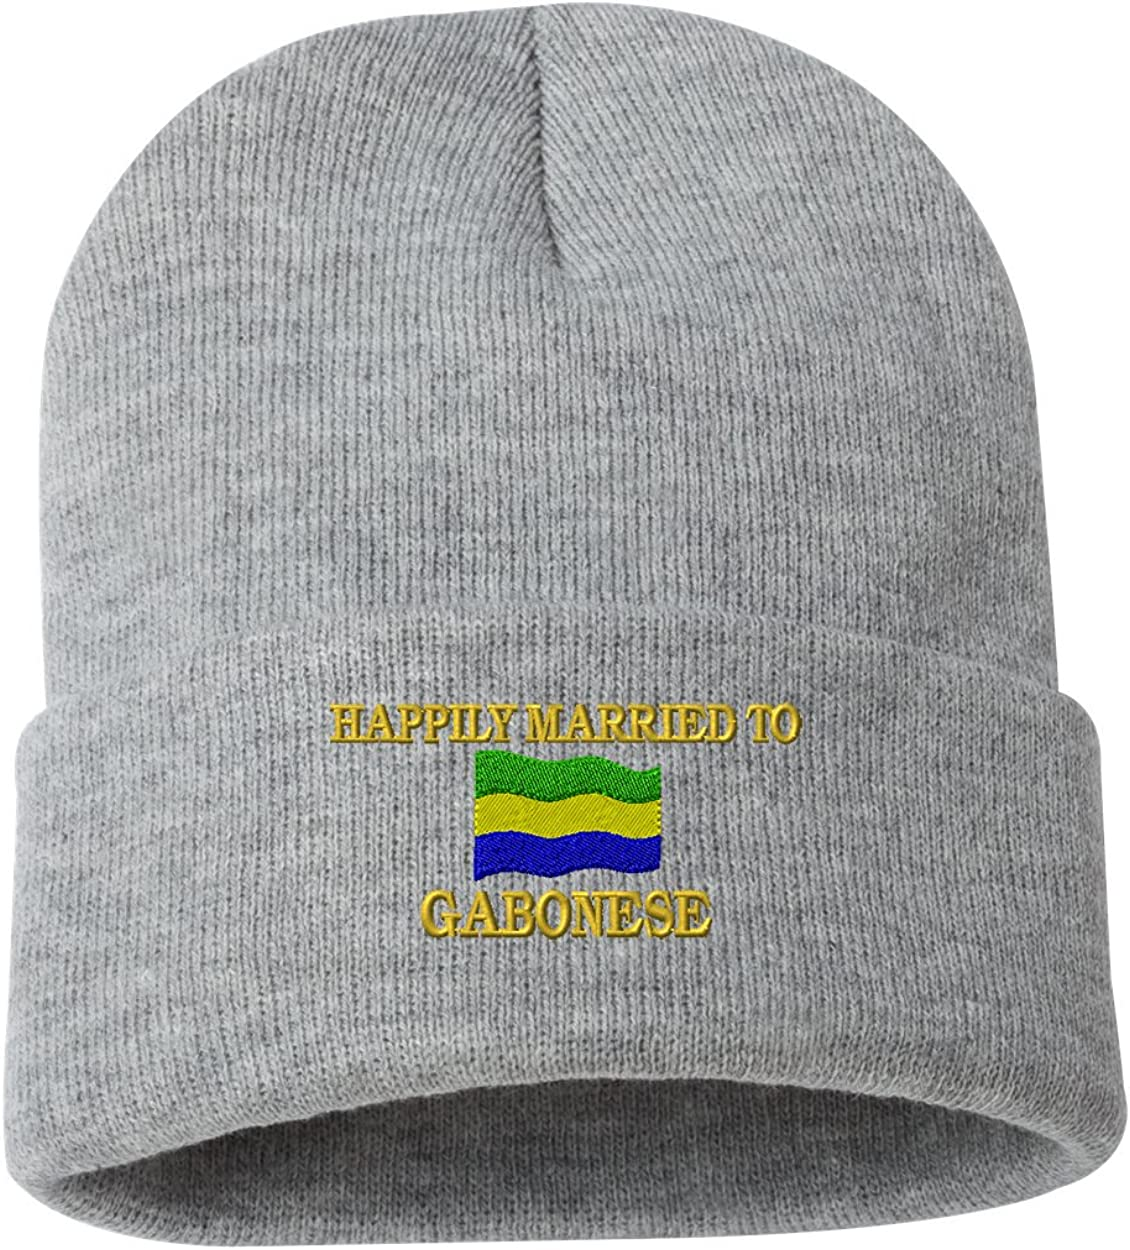 Happily married to Gabonese Custom Personalized Embroidery Embroidered Beanie